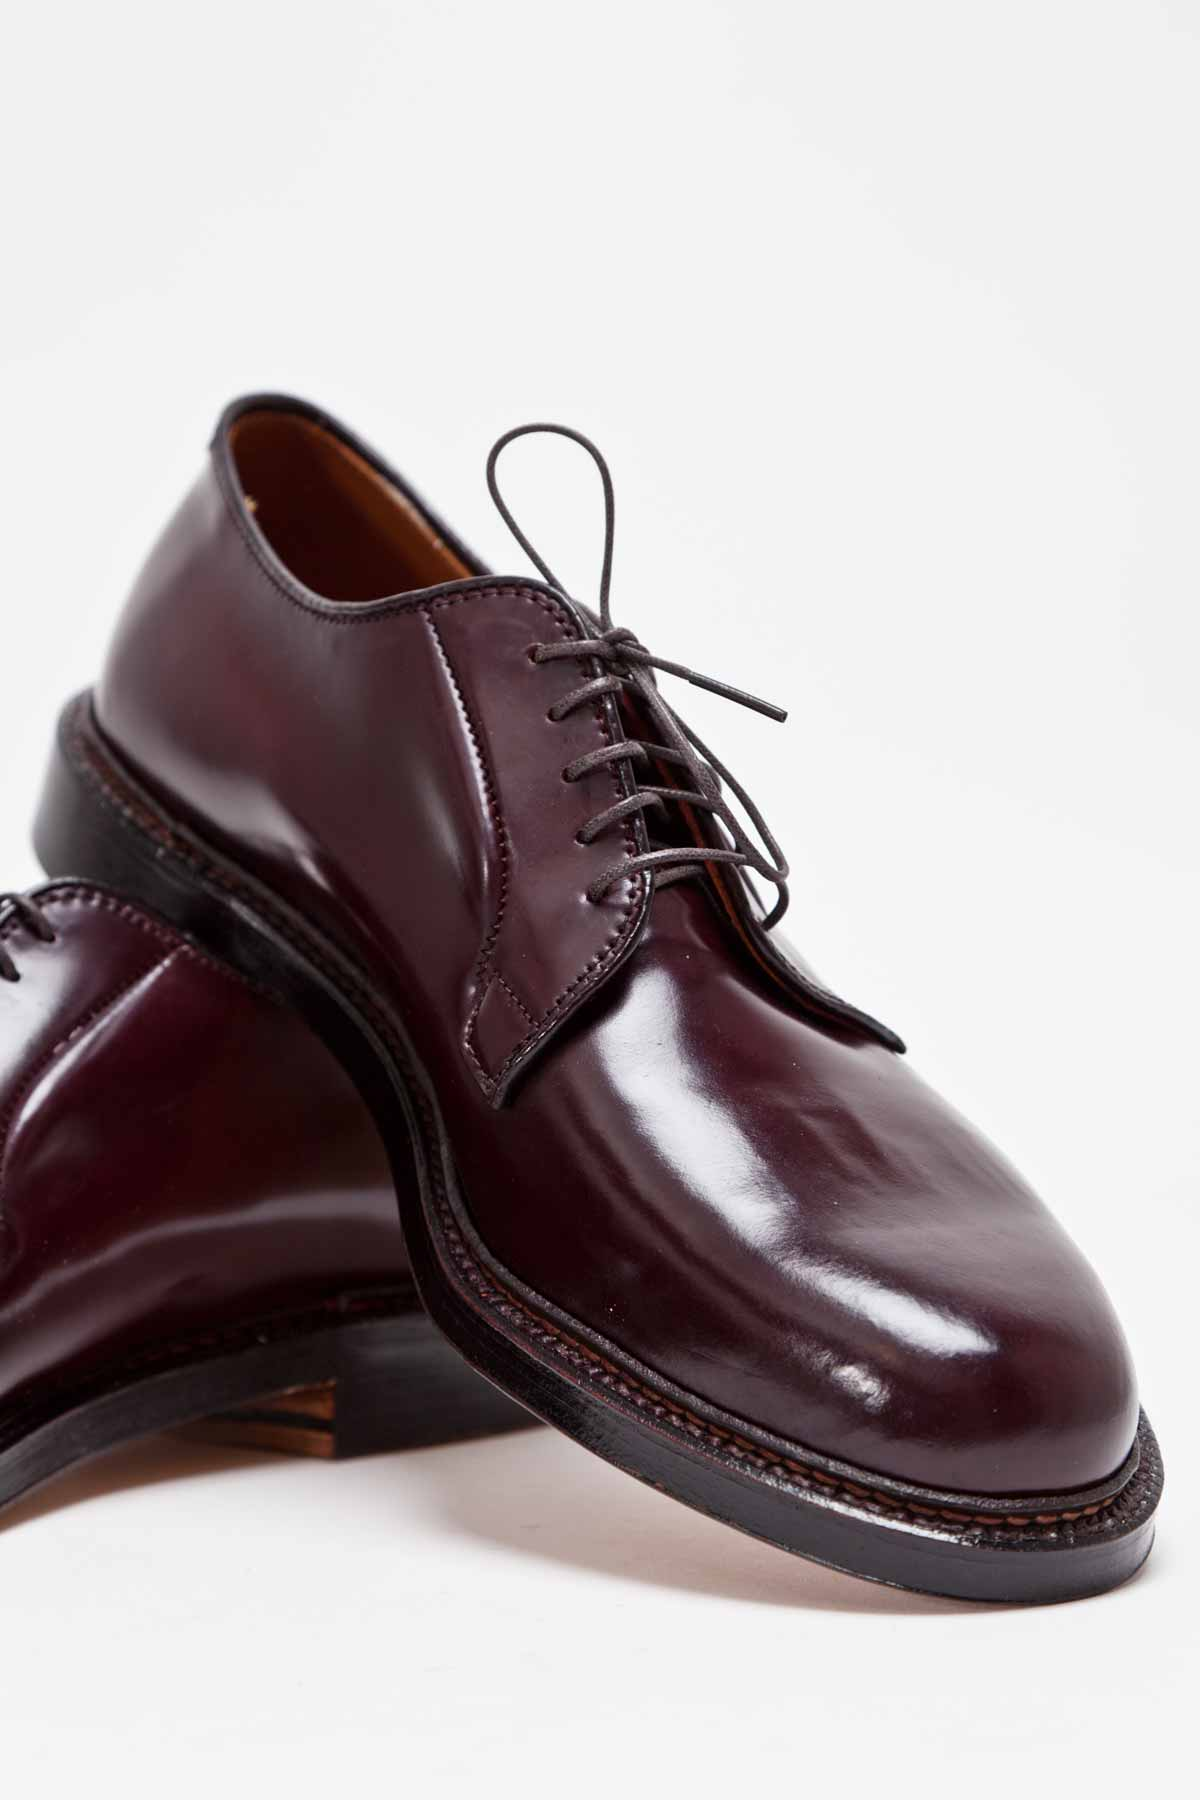 The alden cordovan plain toe blucher in burgundy soletopia for The alden